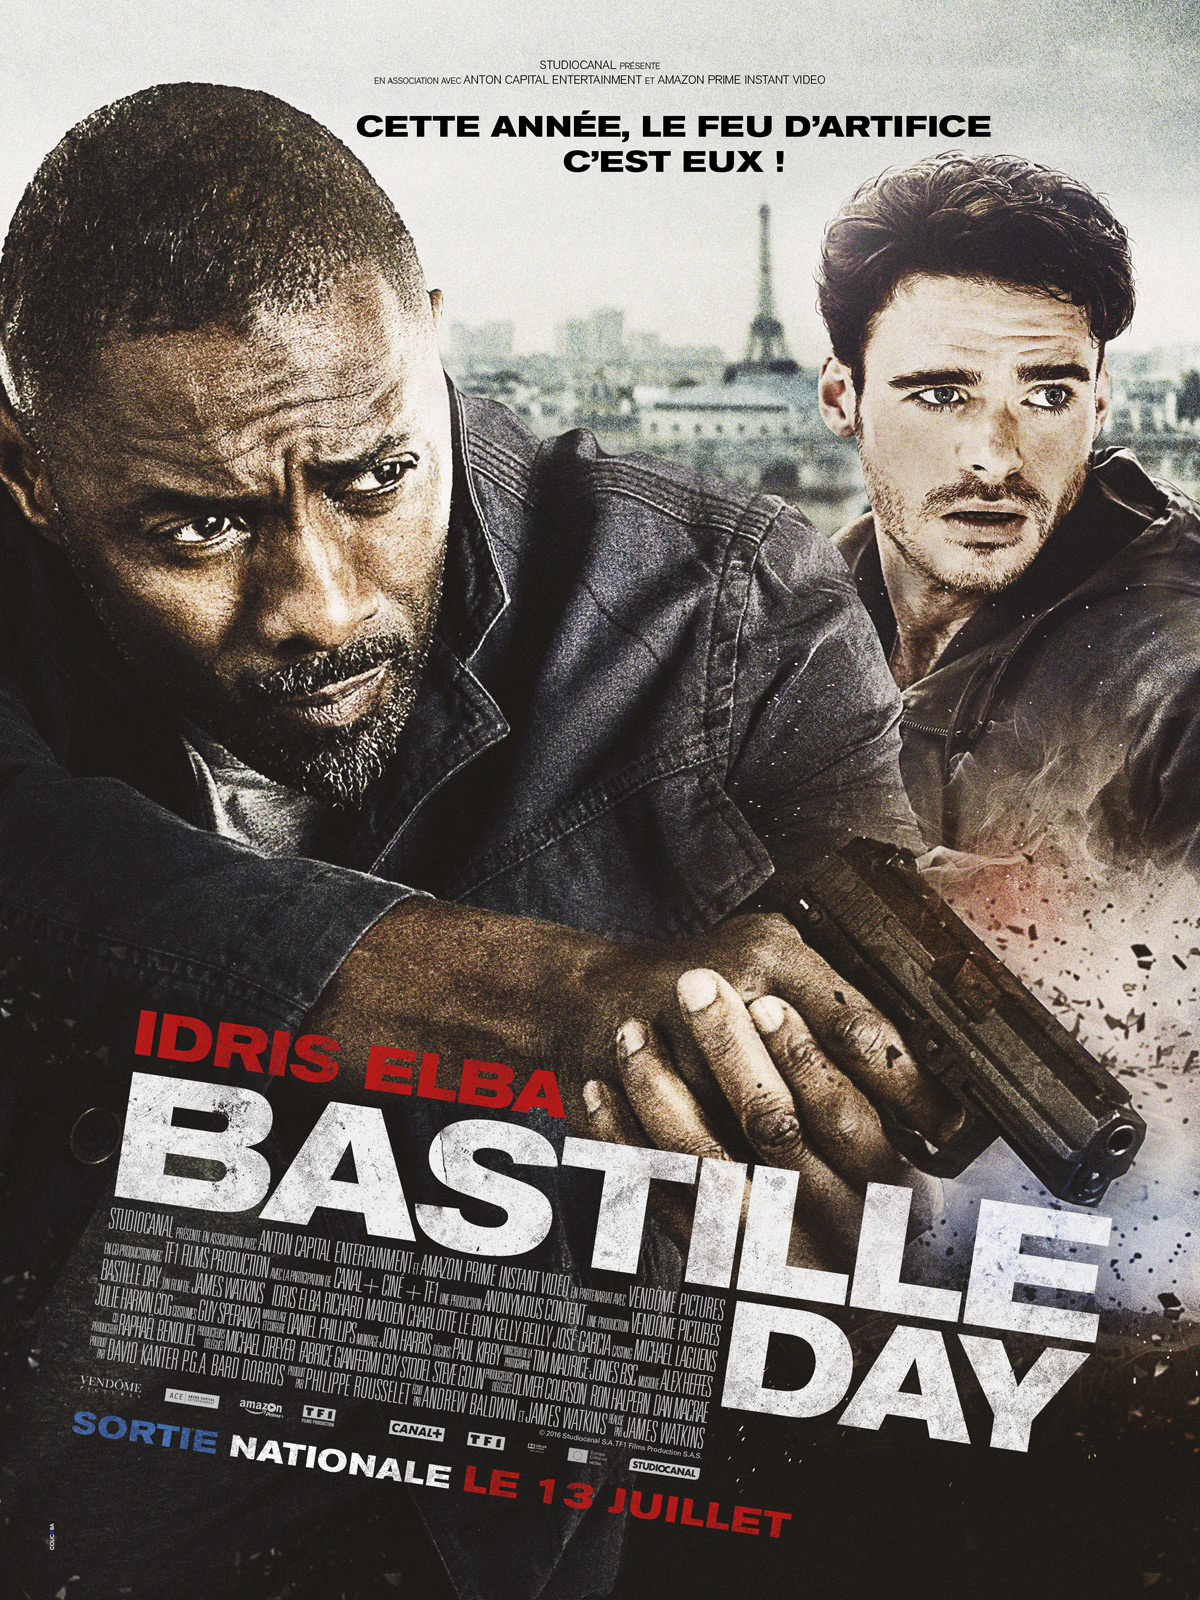 Bastille Day ddl